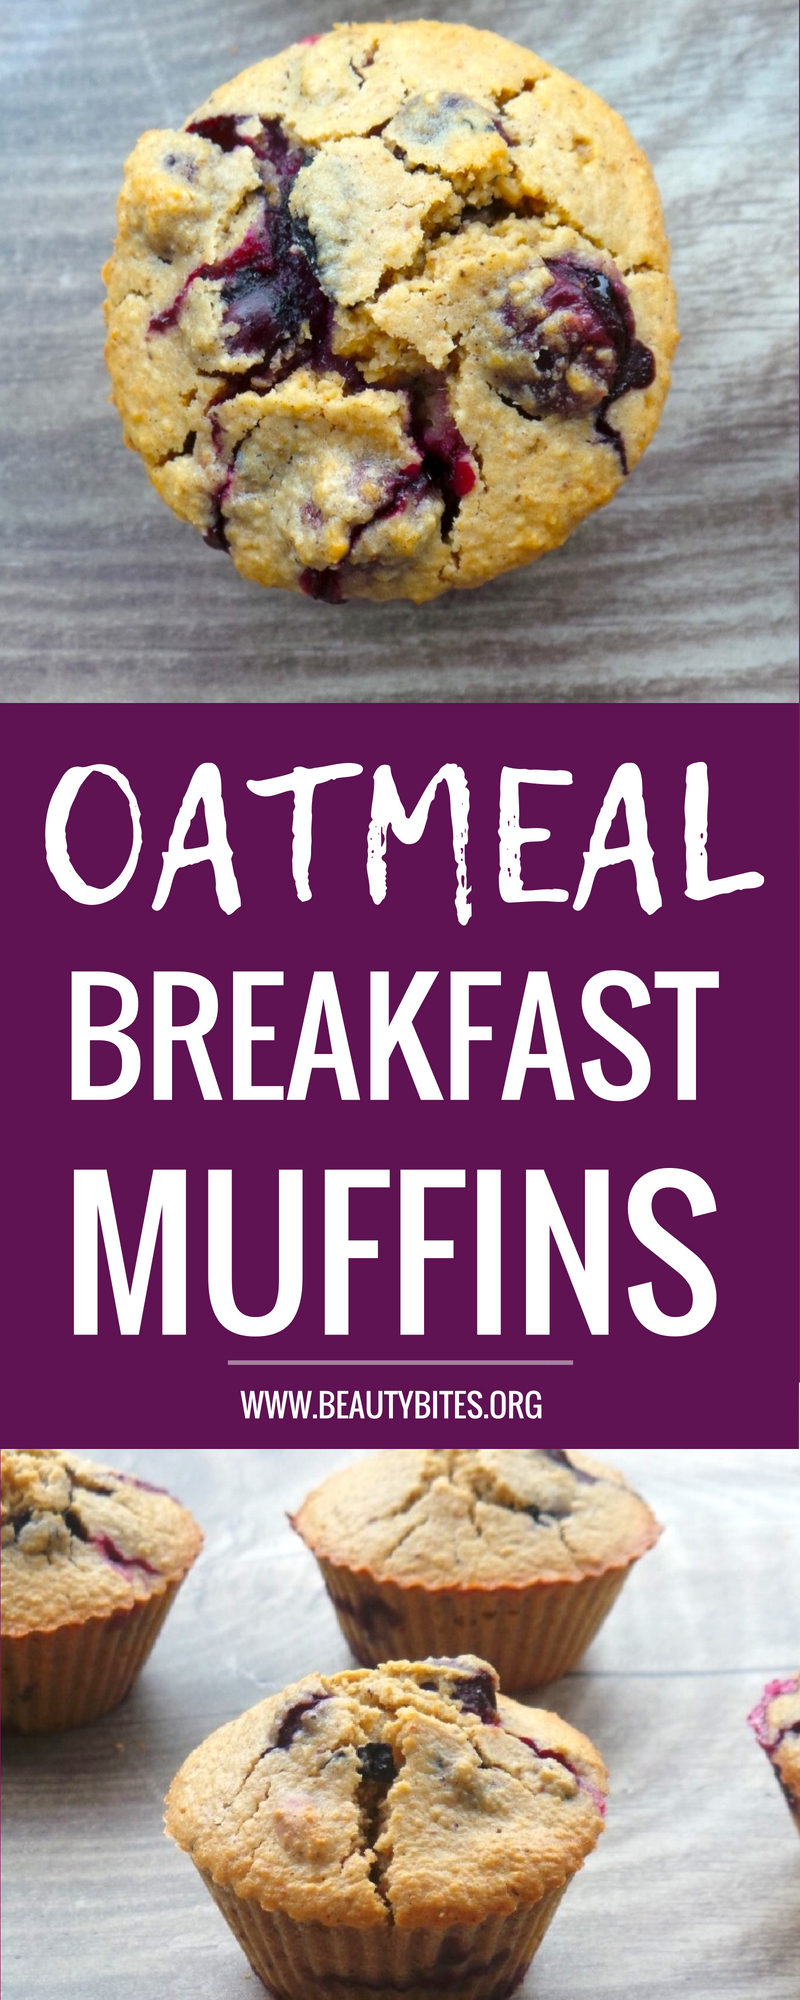 Healthy blueberry muffins for breakfast! These are flourless - instead we're using oats! This recipe is also refined sugar-free - perfect for a healthy breakfast on the go or for meal prep